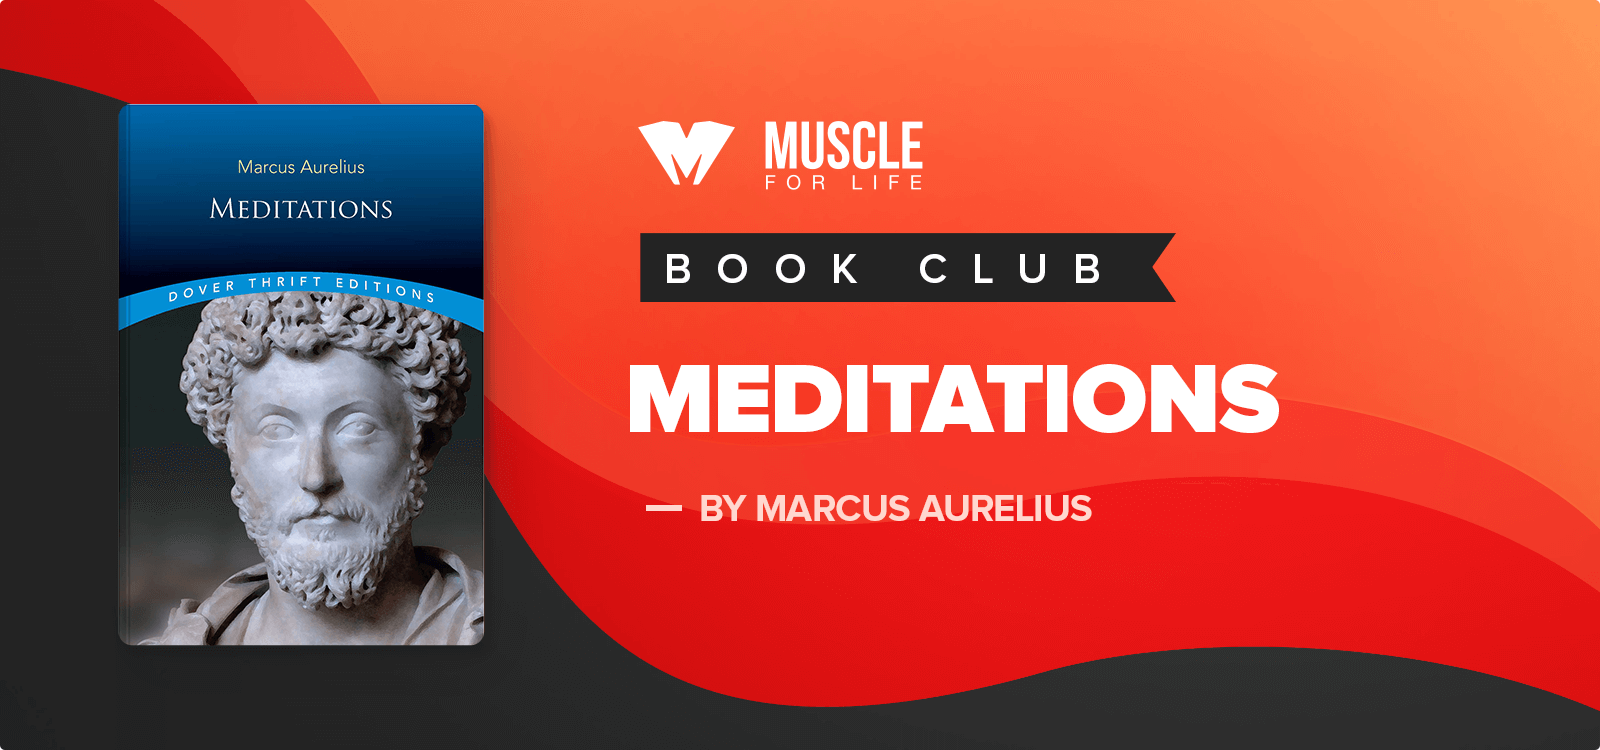 My Top 5 Takeaways from Meditations by Marcus Aurelius